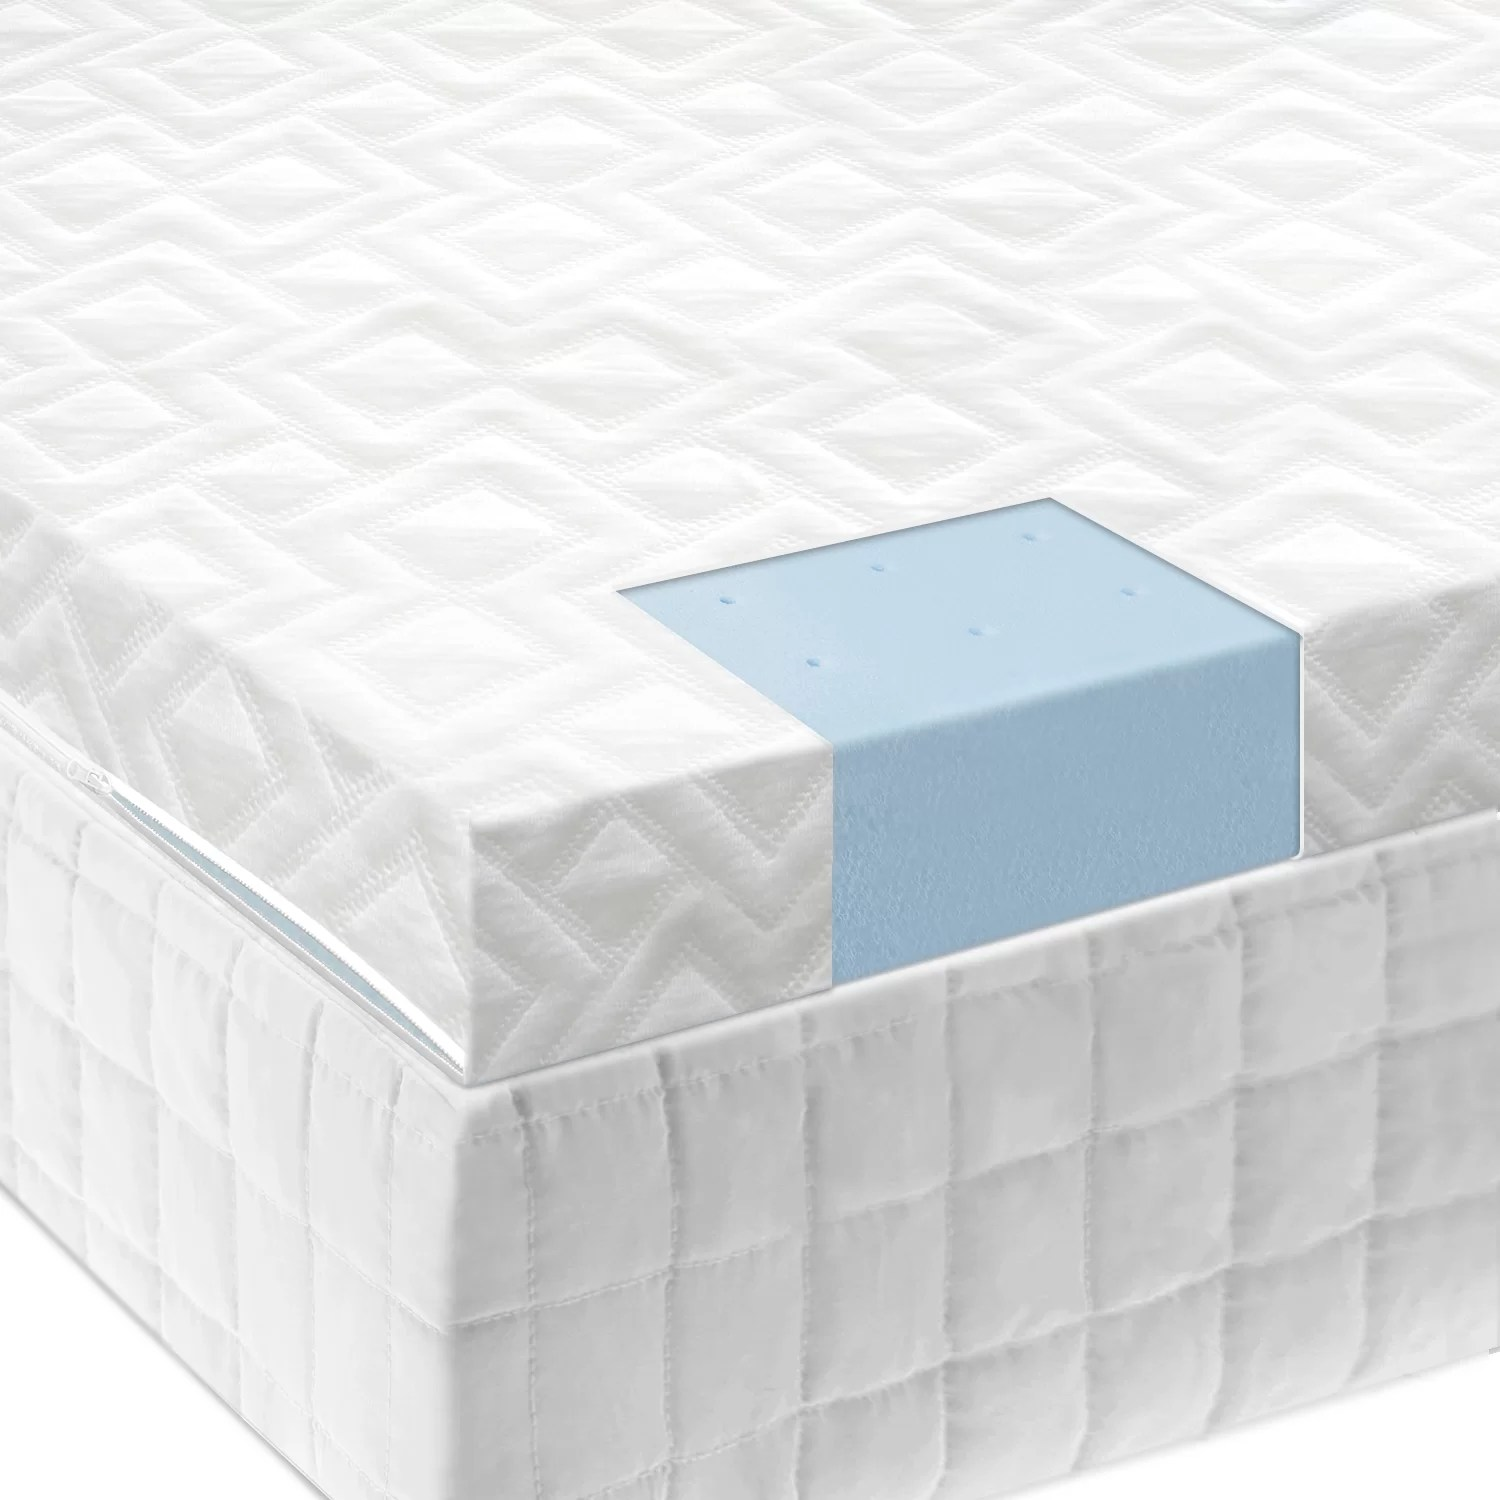 Buy Mattress Topper Malouf Ventilated Gel Memory Foam Mattress Topper